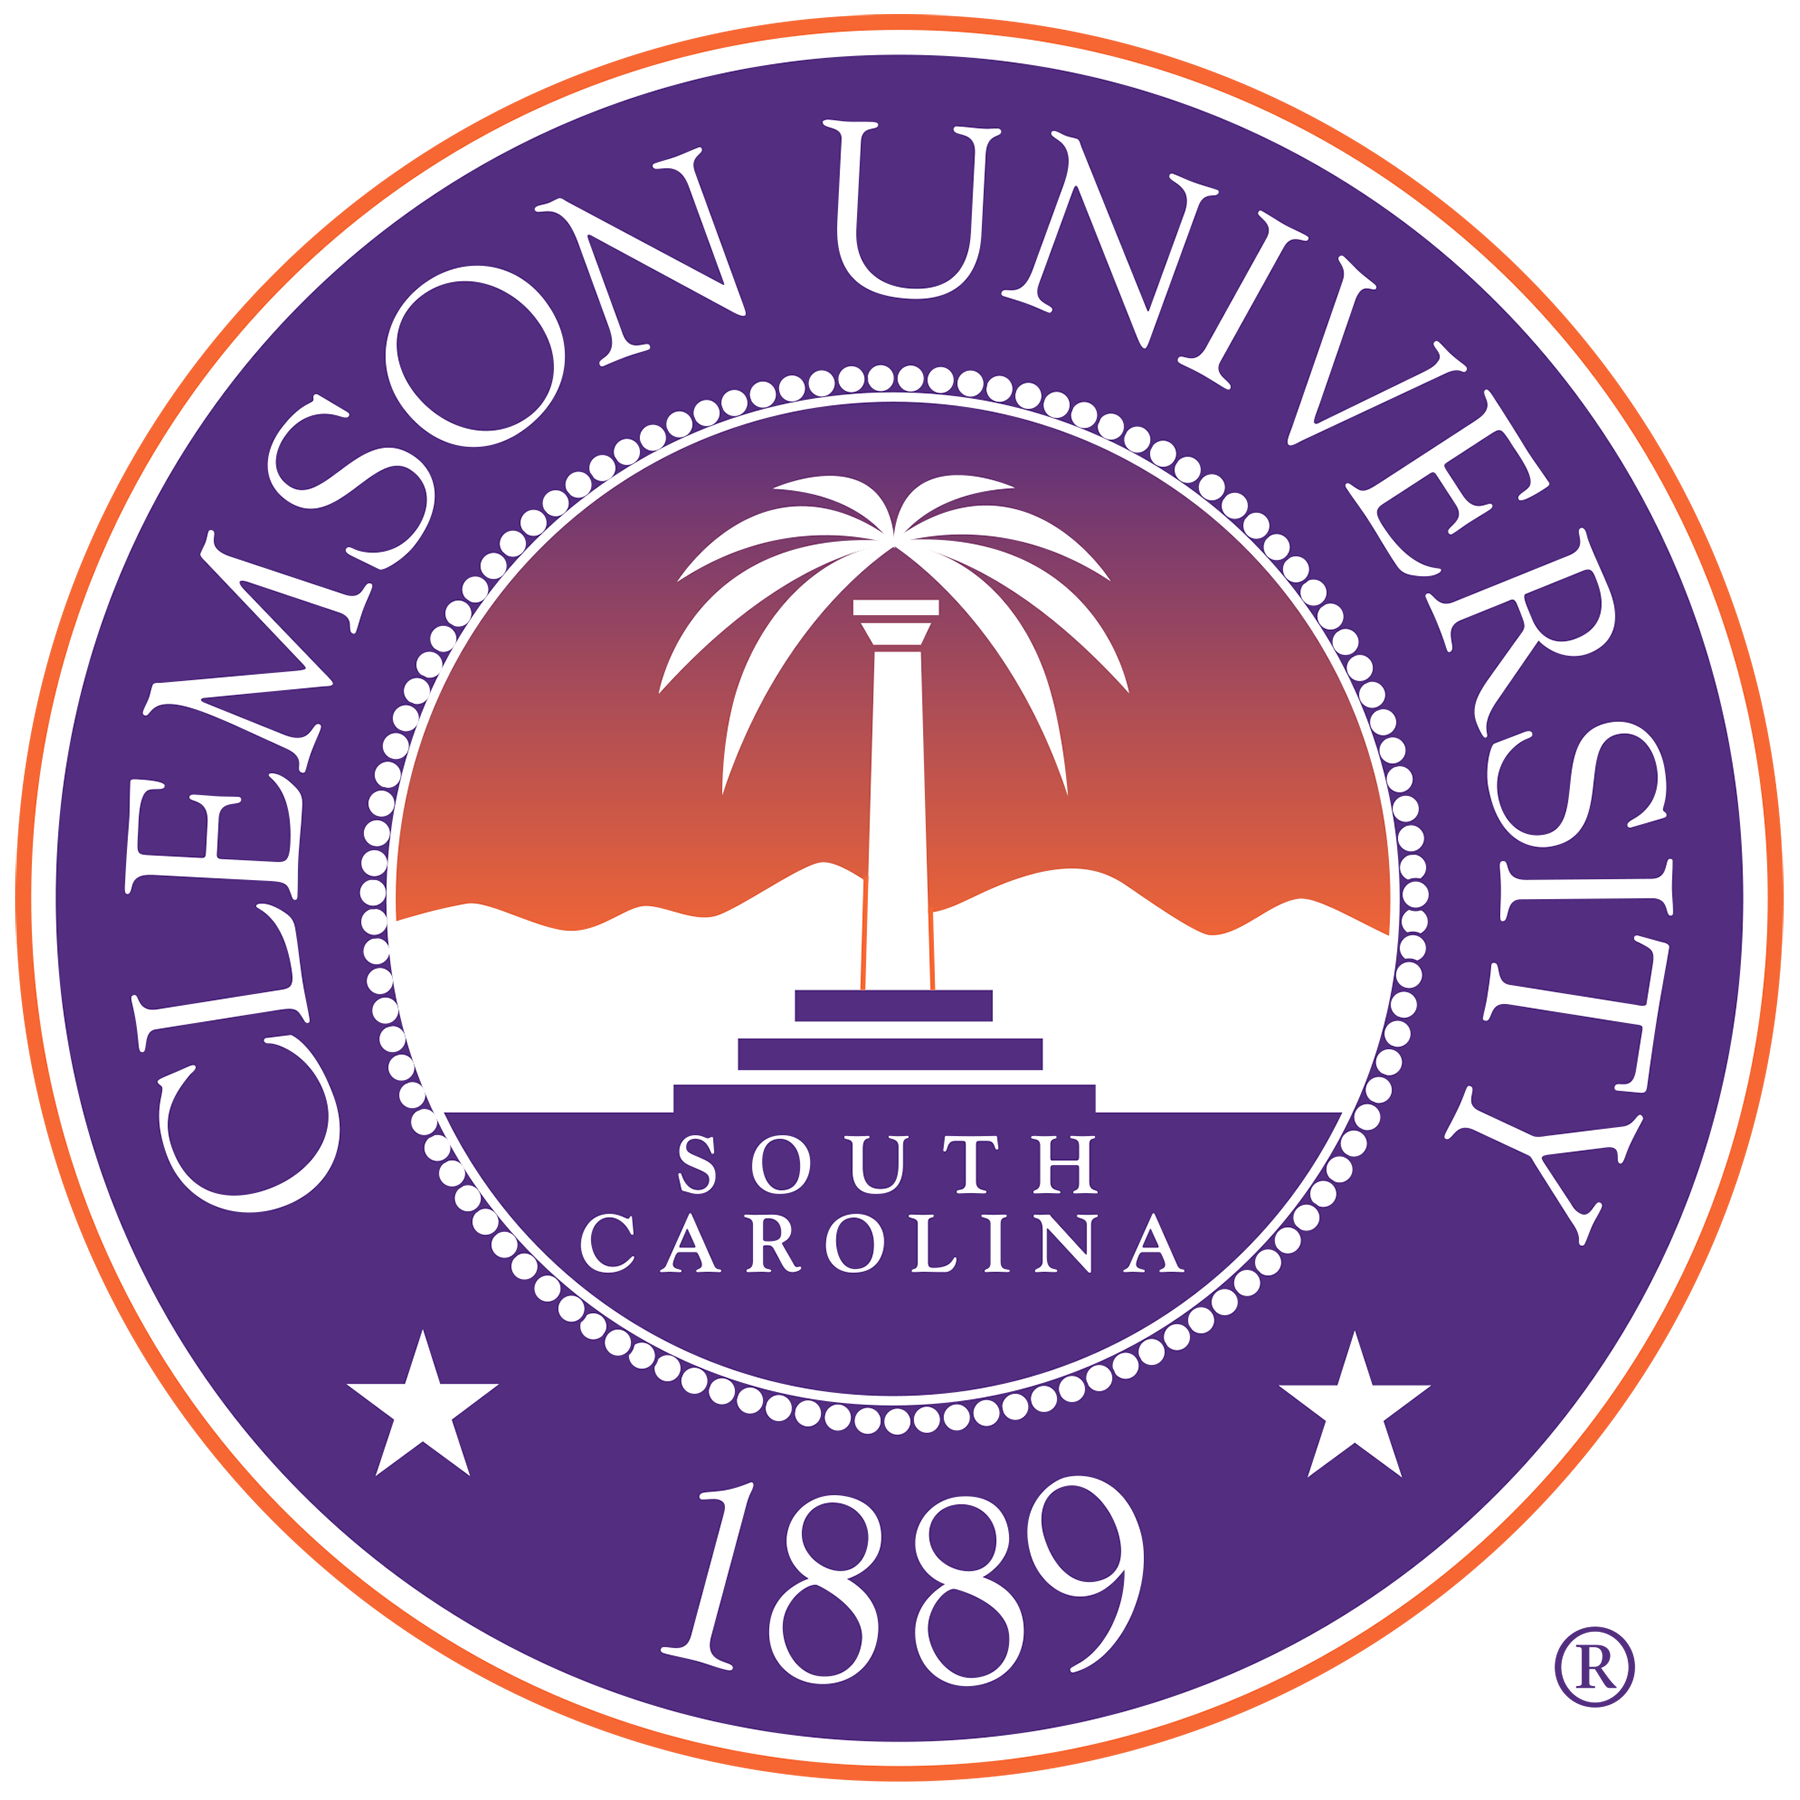 clemson university dissertation Dr beshah ayalew, professor clemson university: dissertation topic: on the dynamics, stability and fault tolerant control of long-haul tractor-trailer combinations.